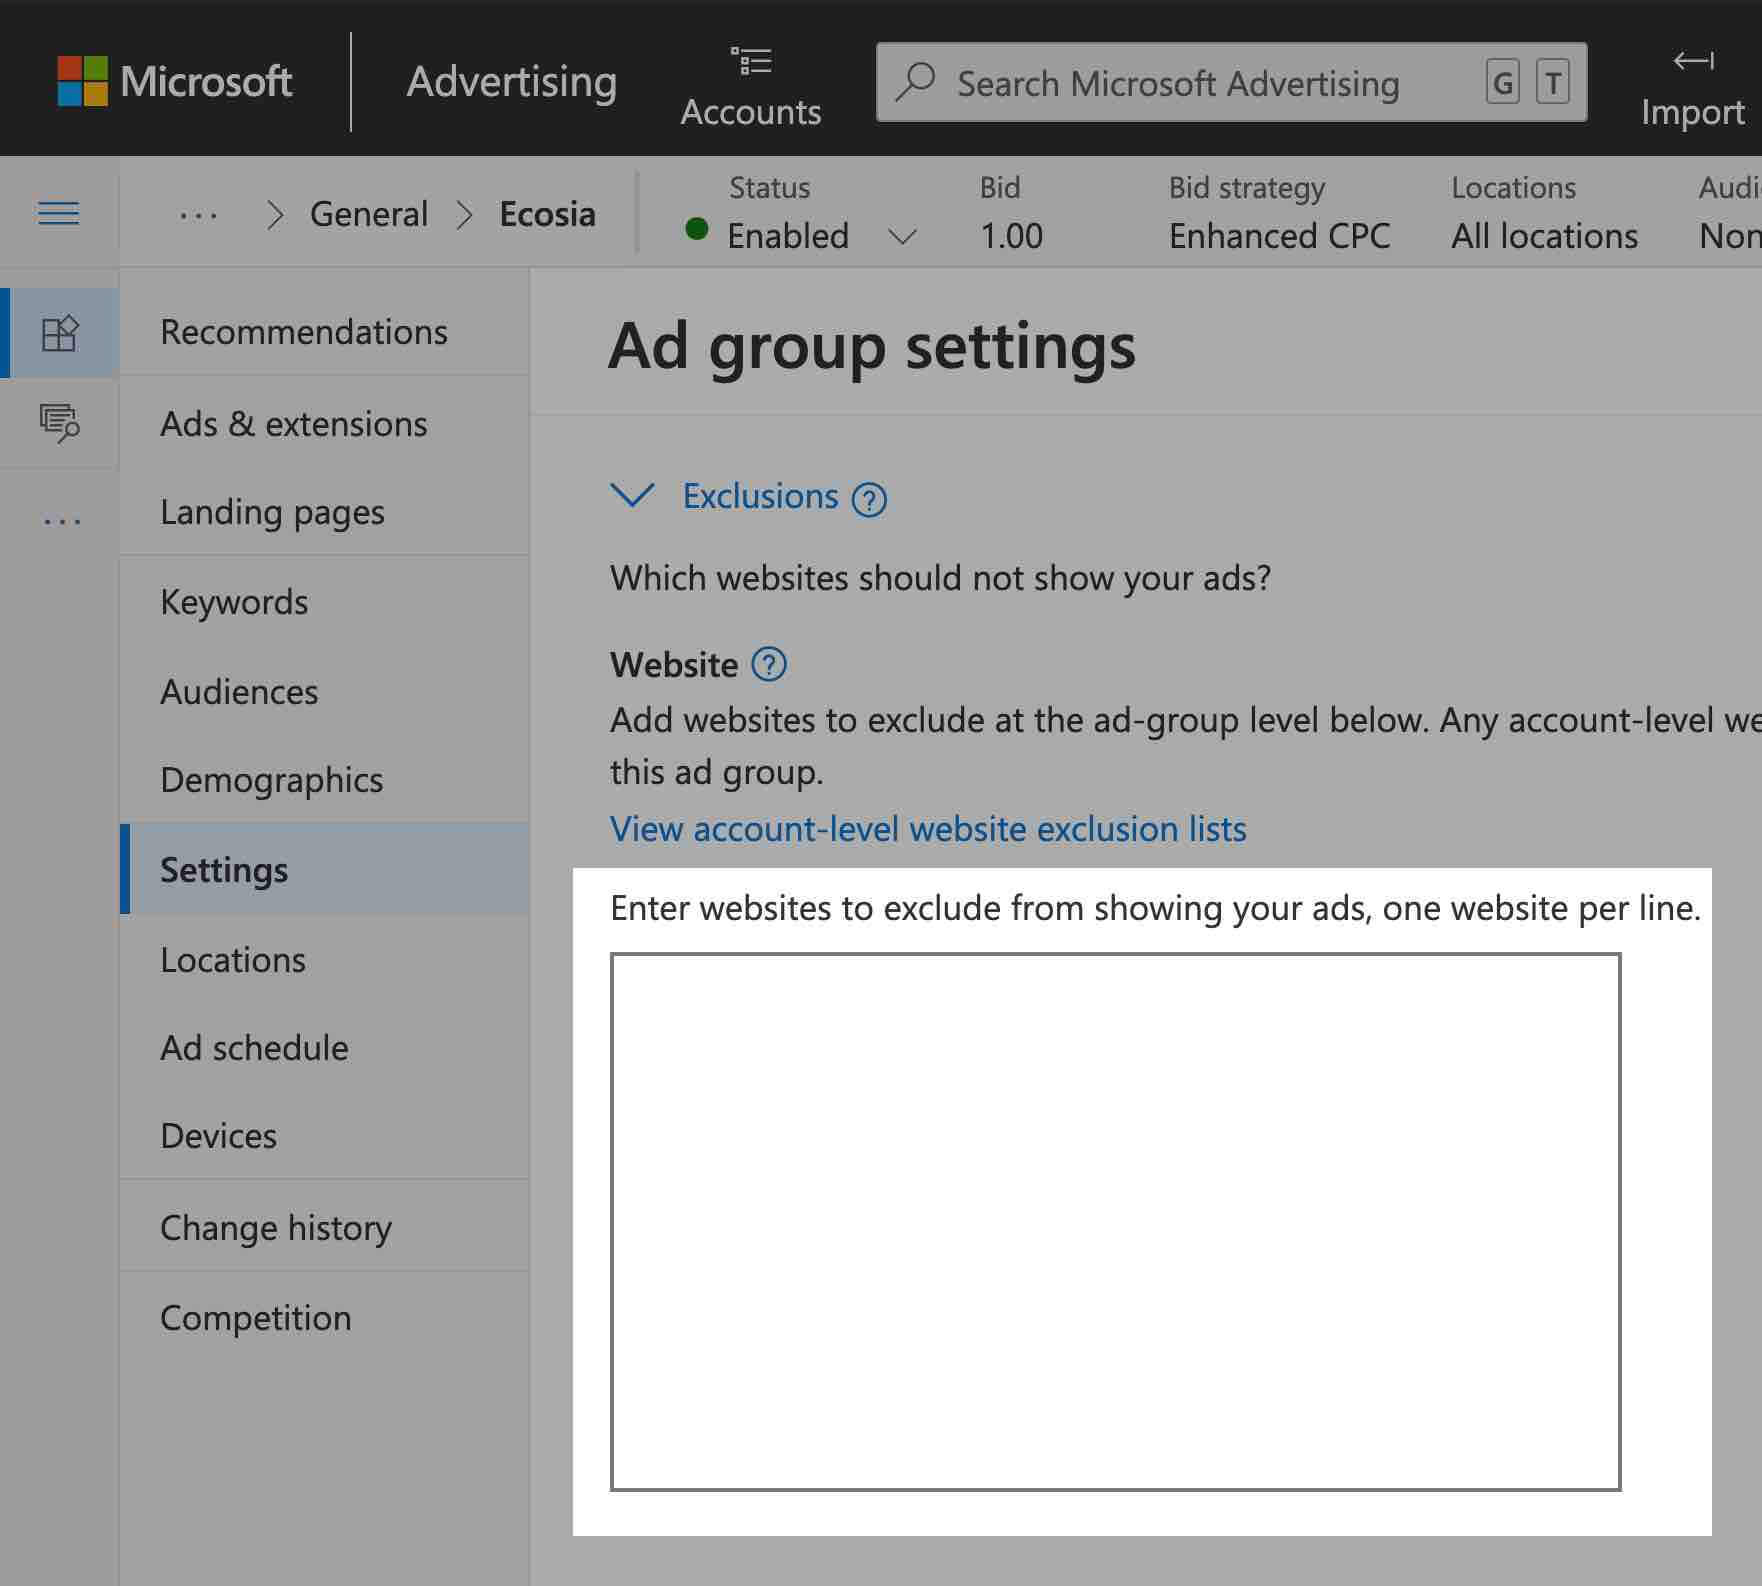 set up ad group level website exclusions in microsoft advertising